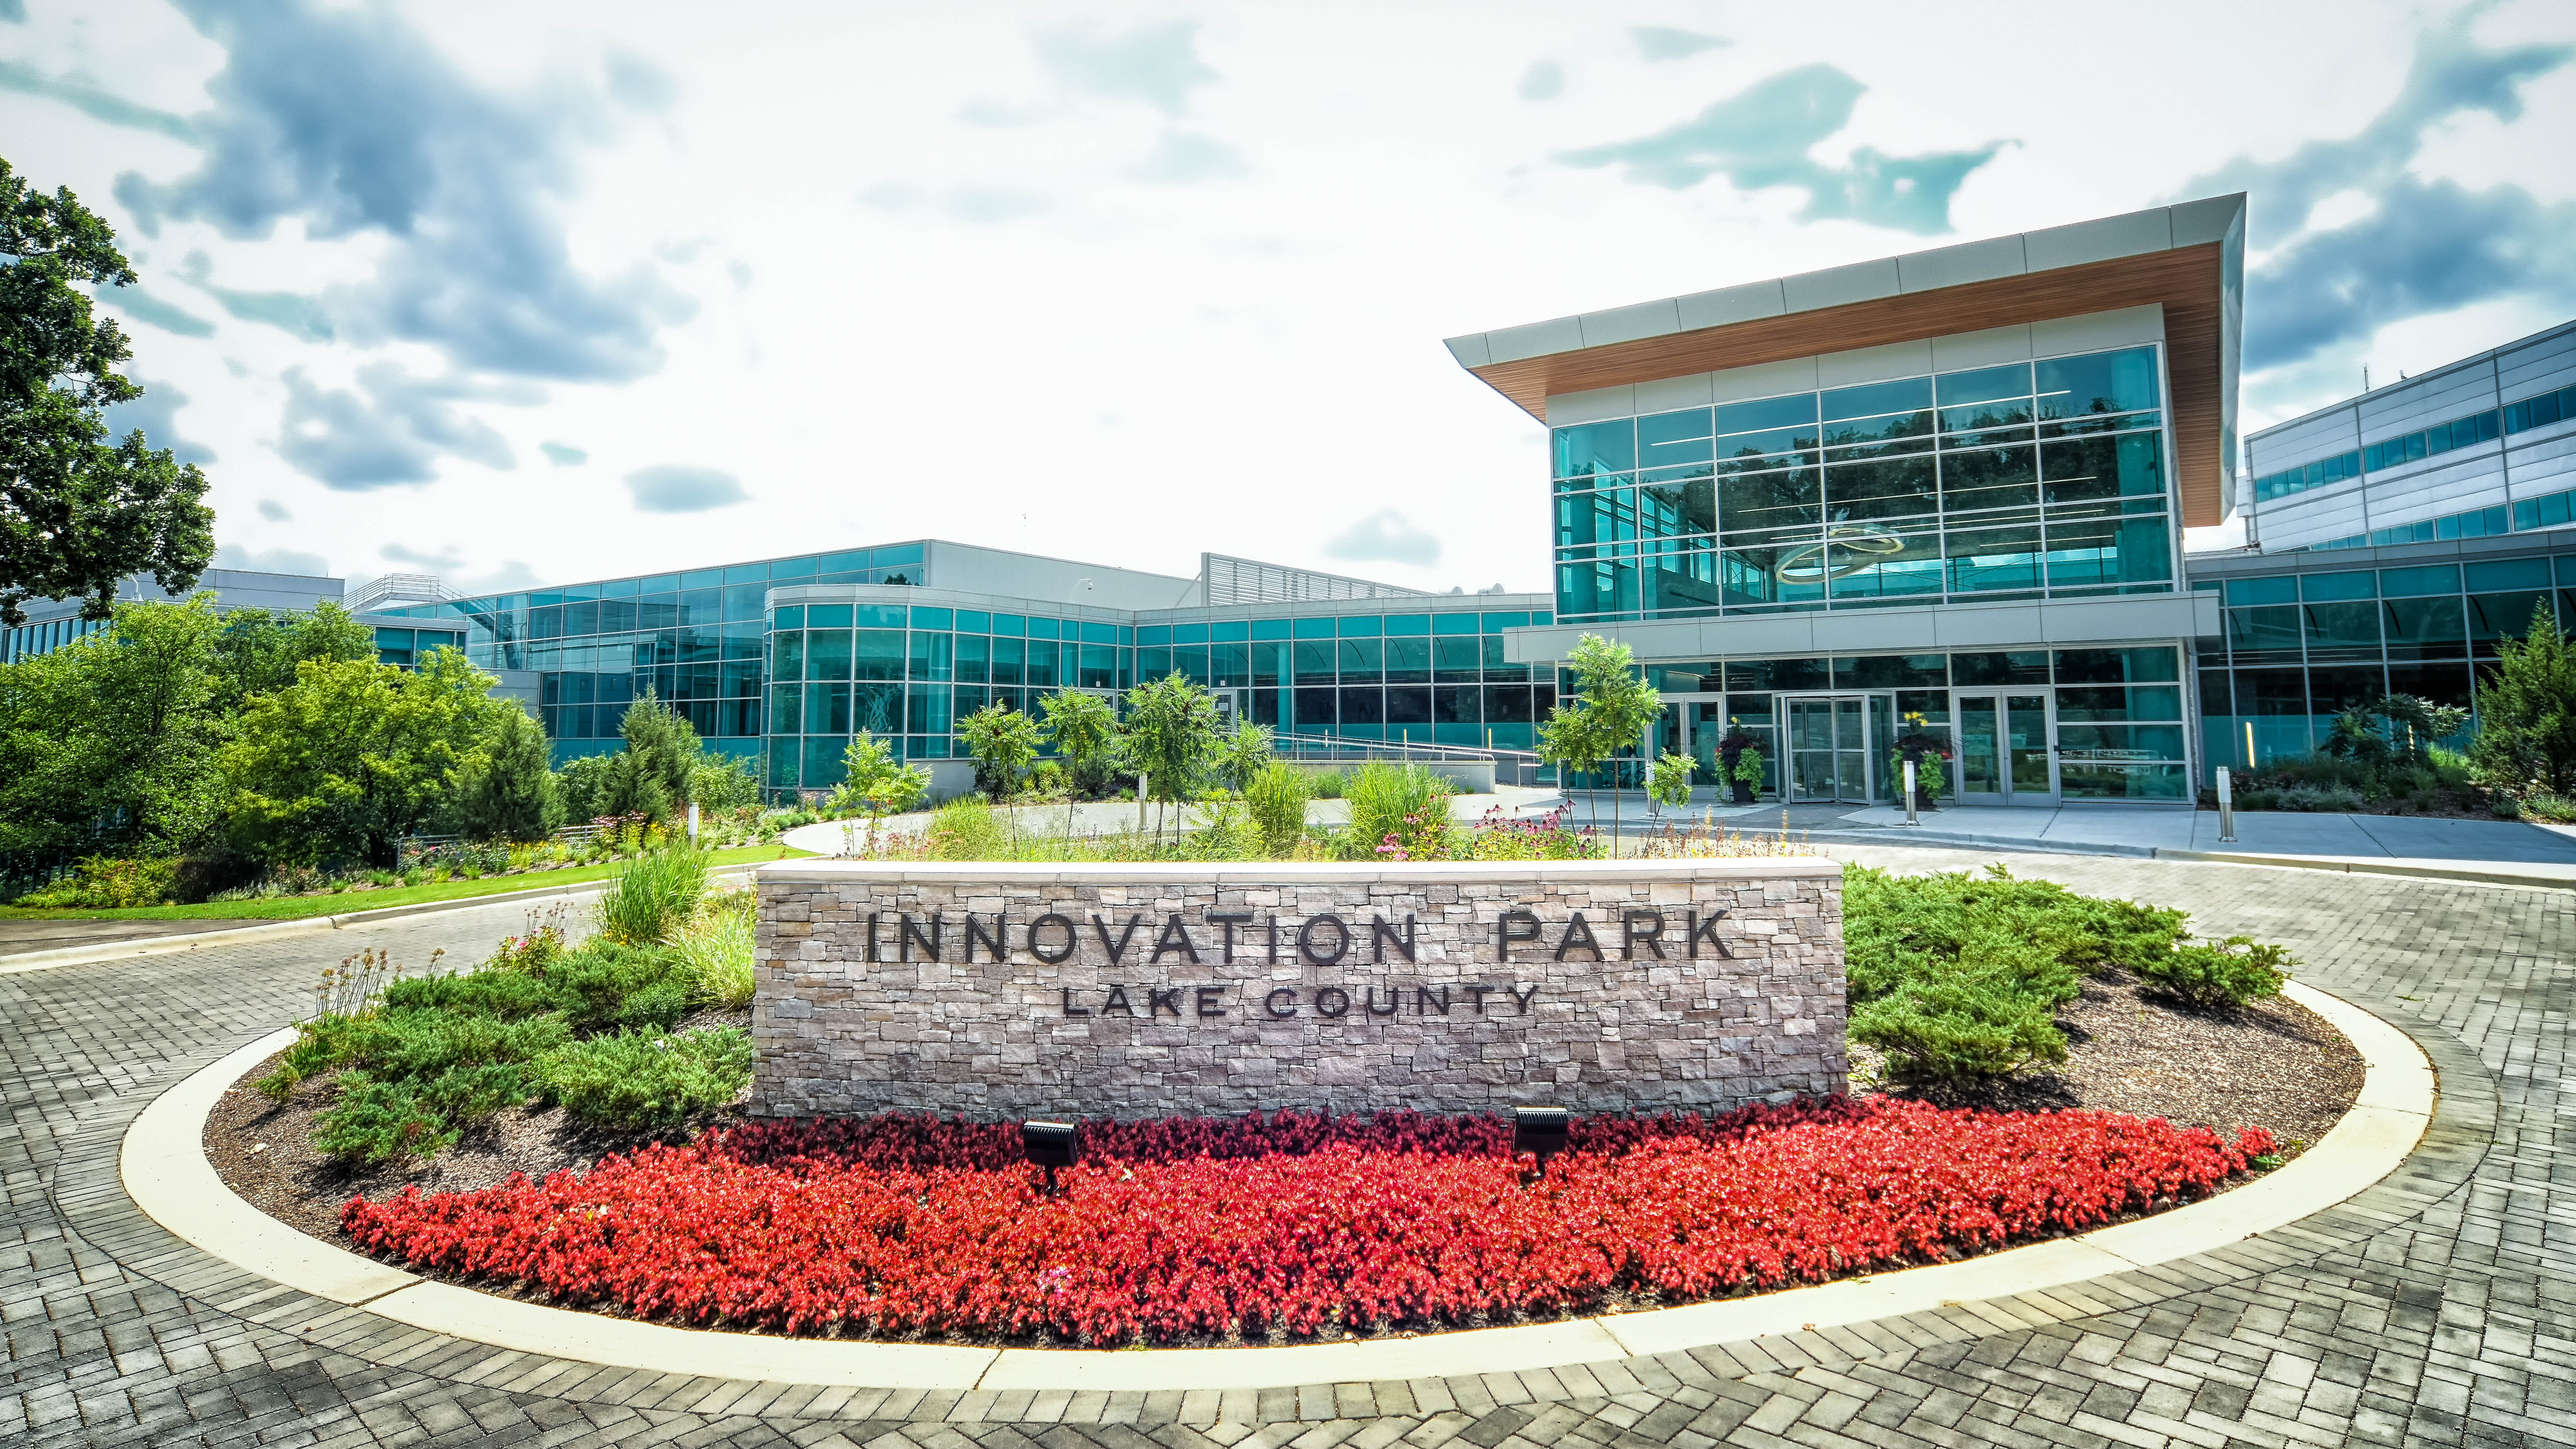 Innovation Park Lake County EVBox offices